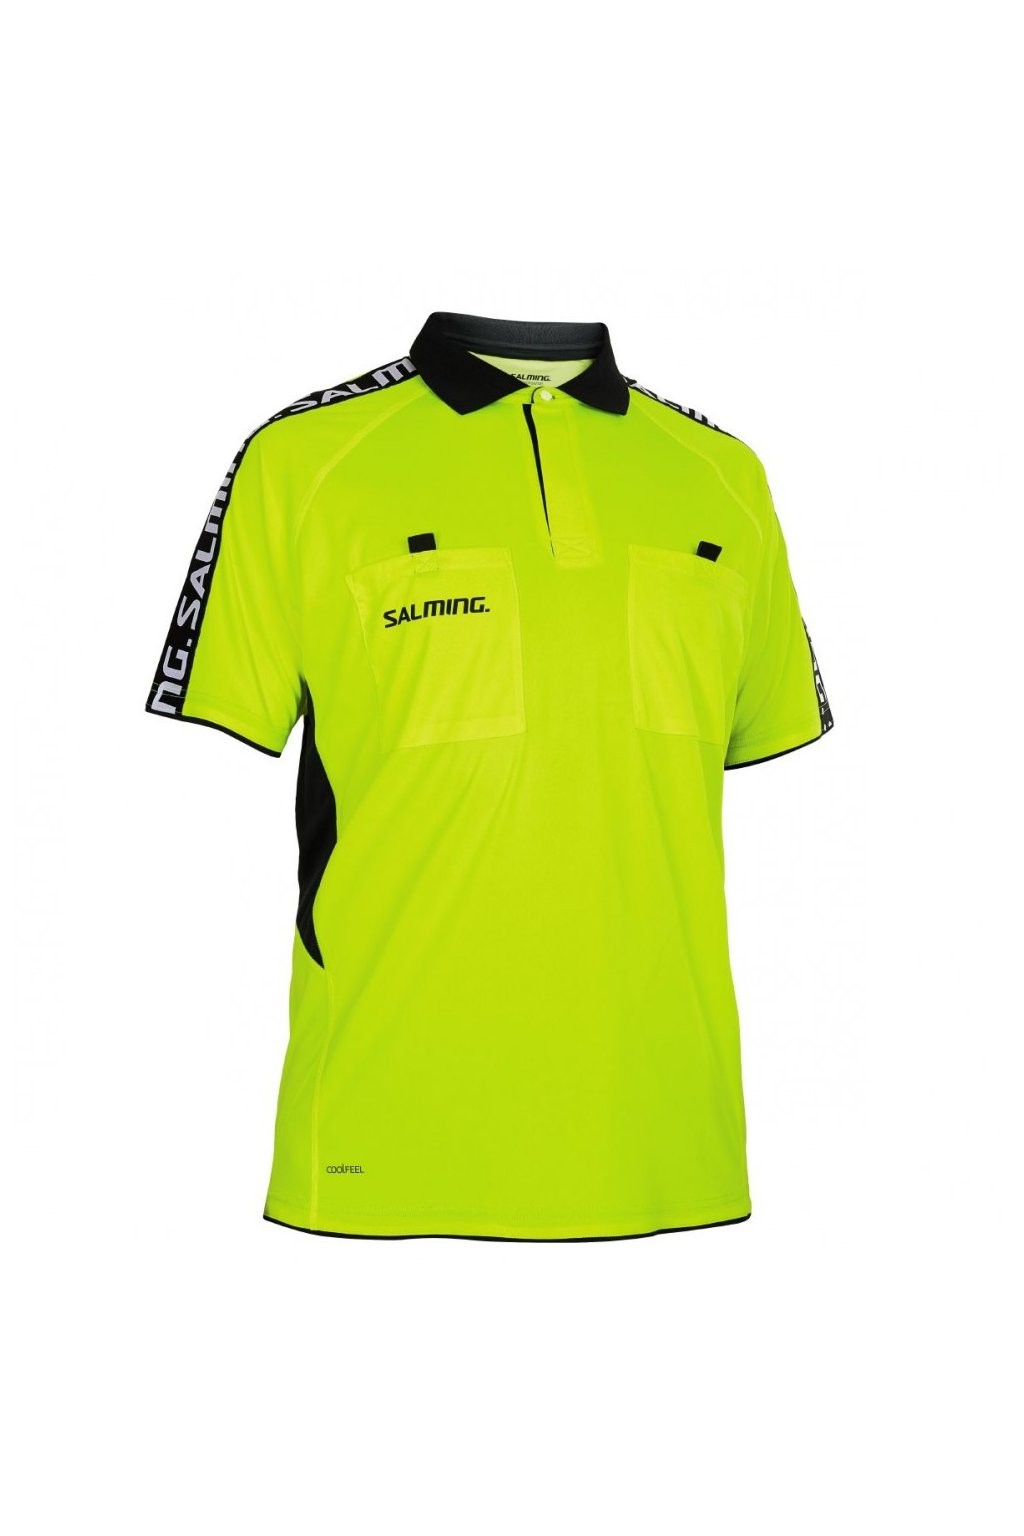 salming referee polo men (2)